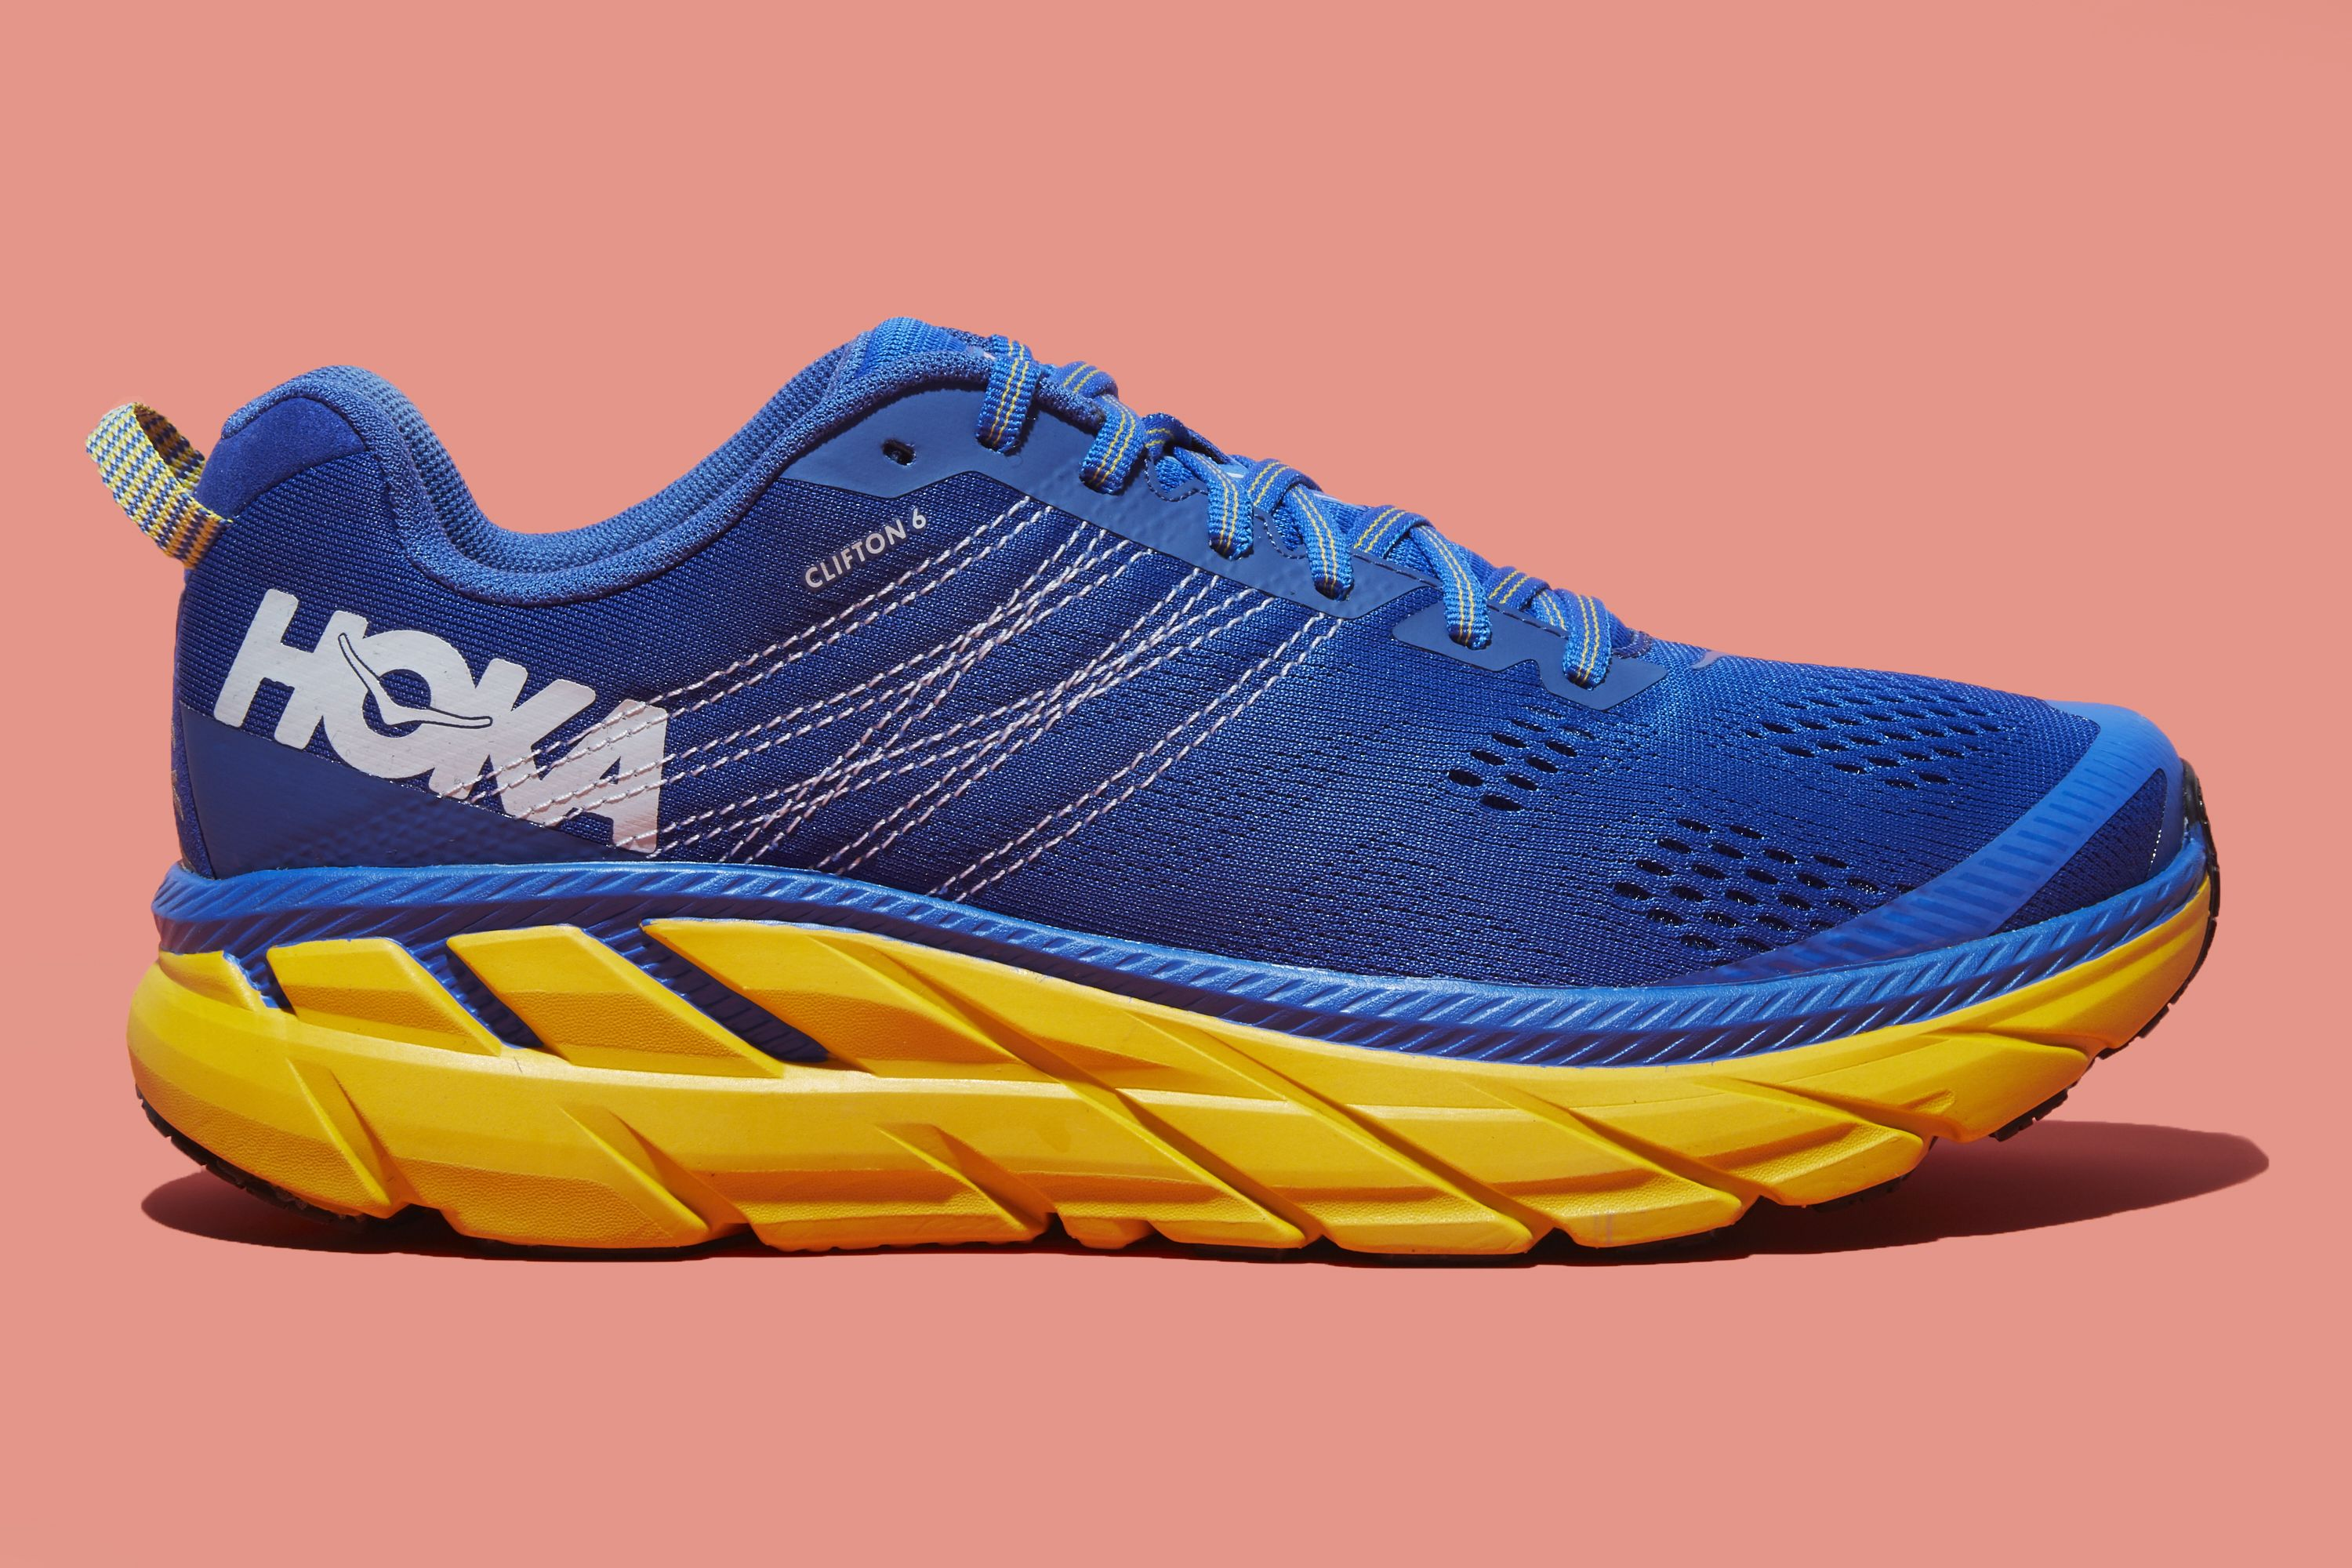 Buying Running Shoes - Mistakes to